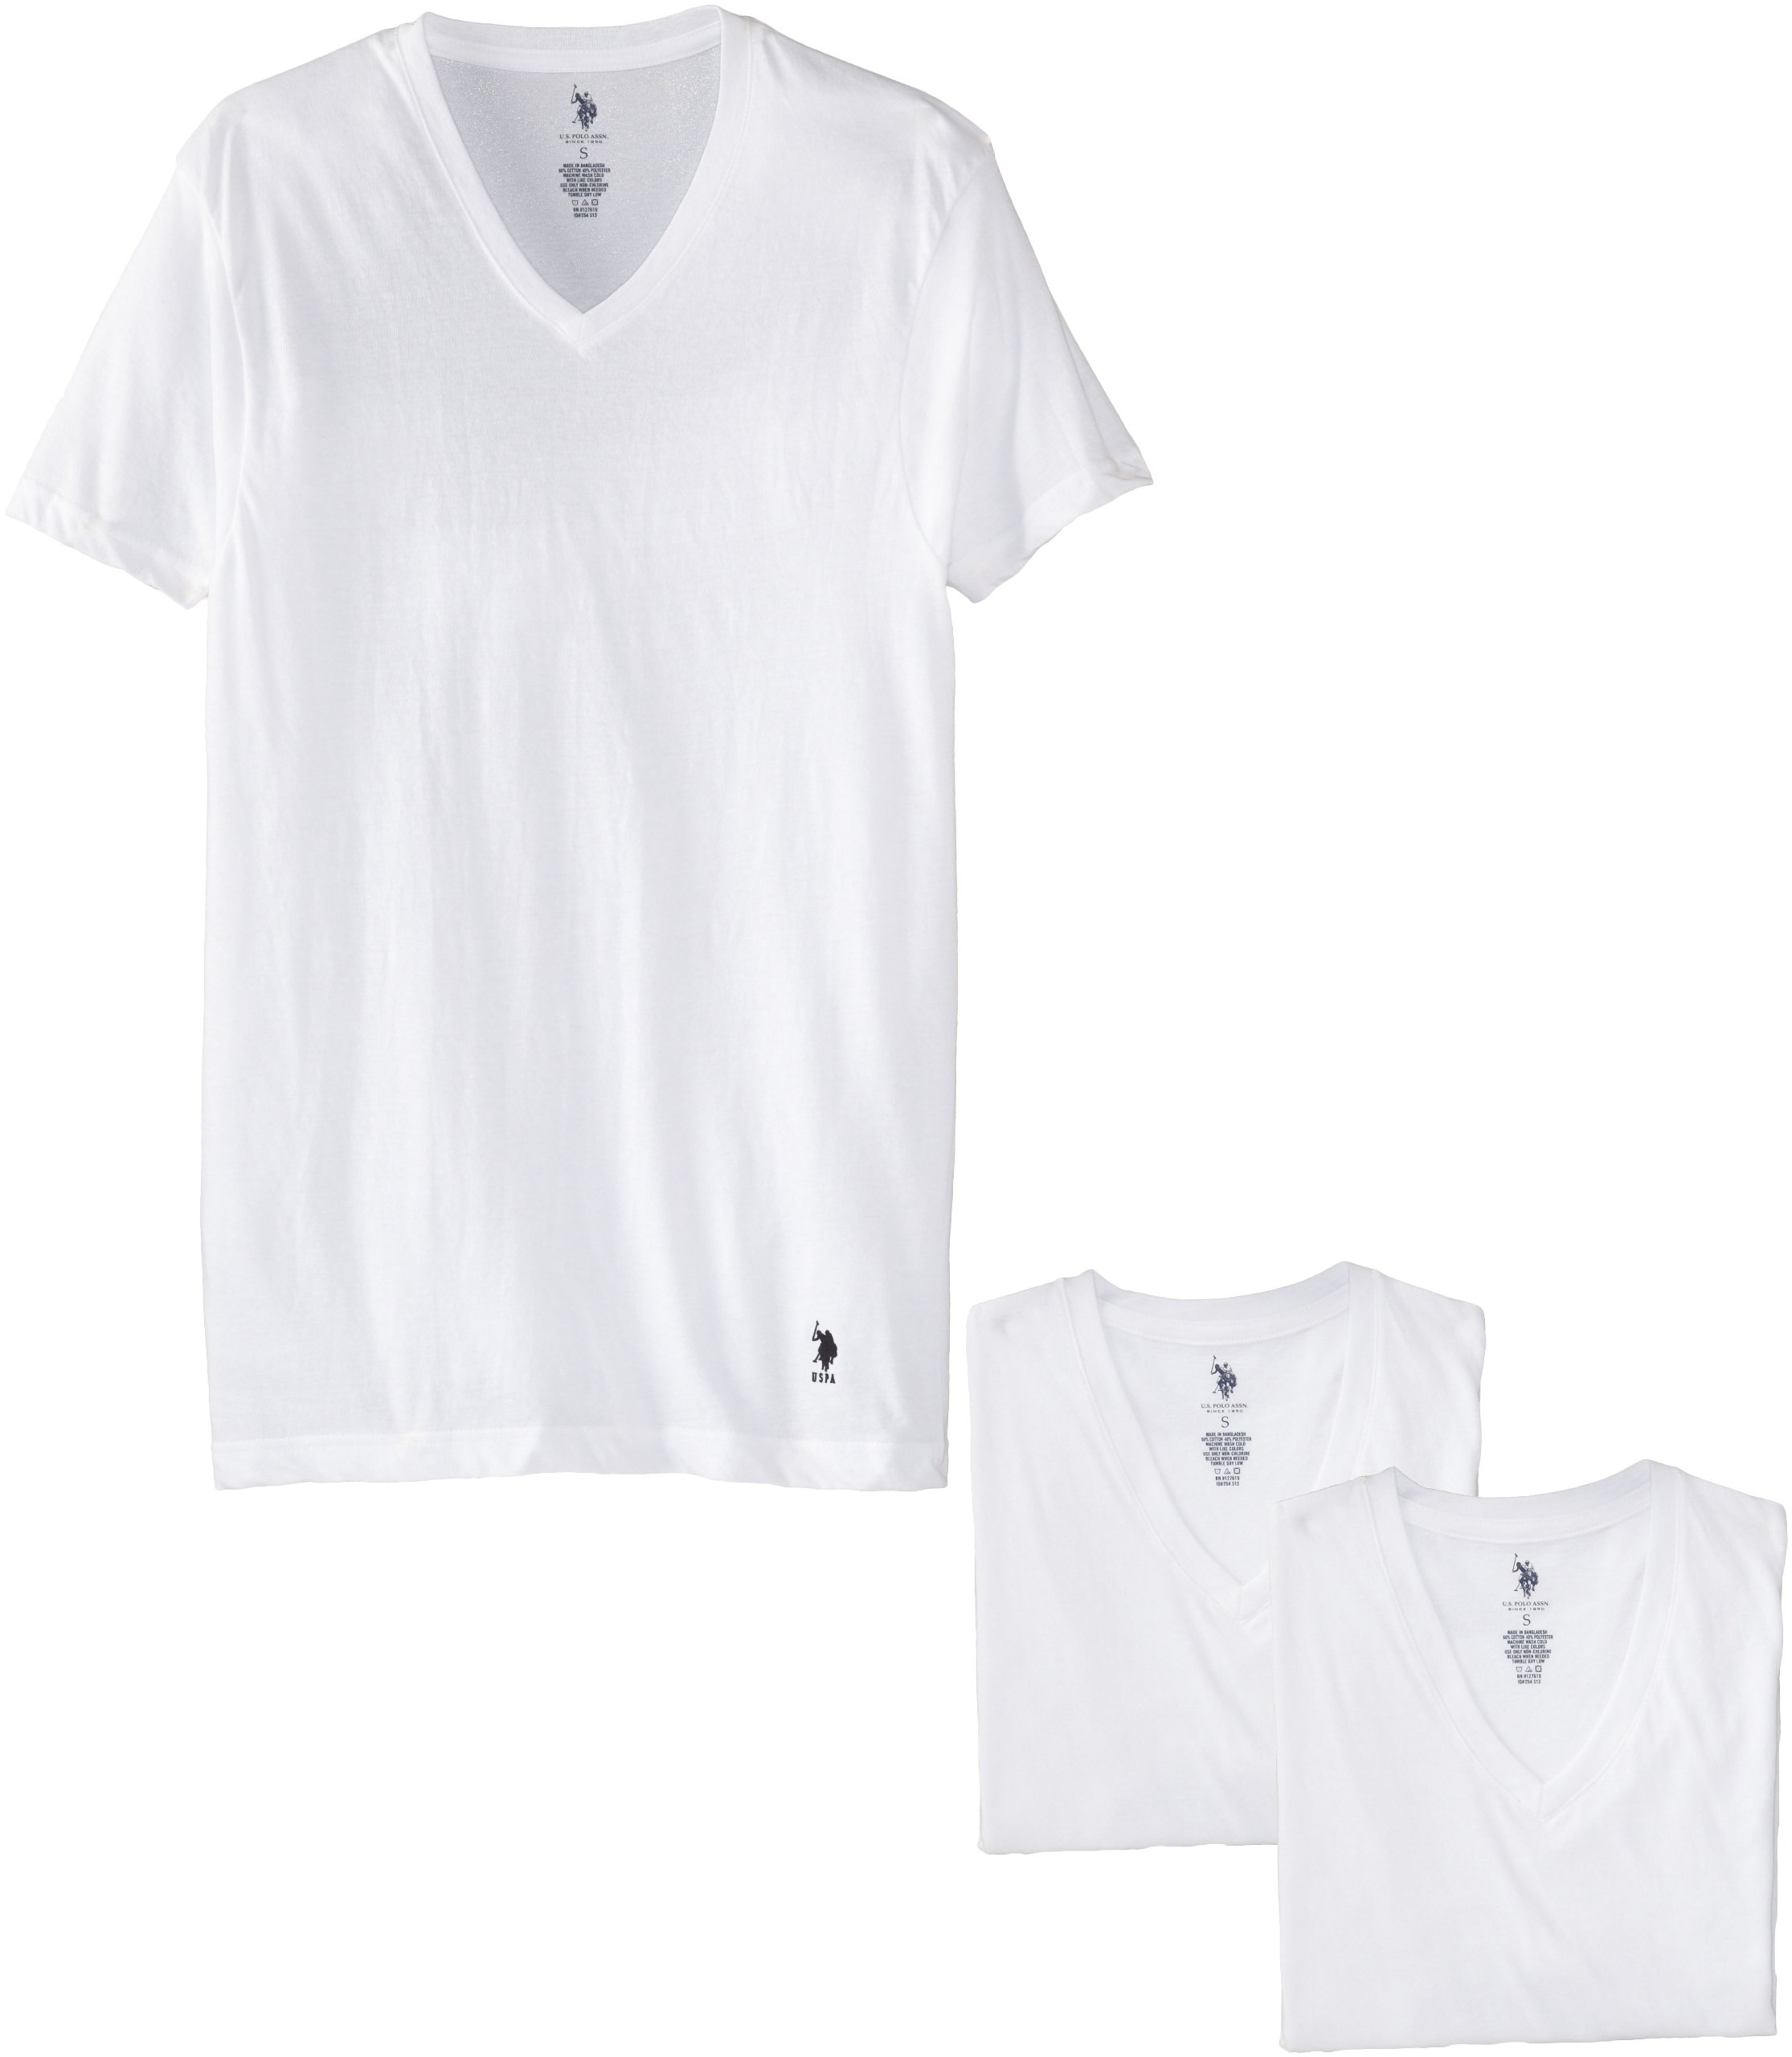 U.S. Polo Assn.. Men's 3 Pack V-Neck Tee, White, Medium